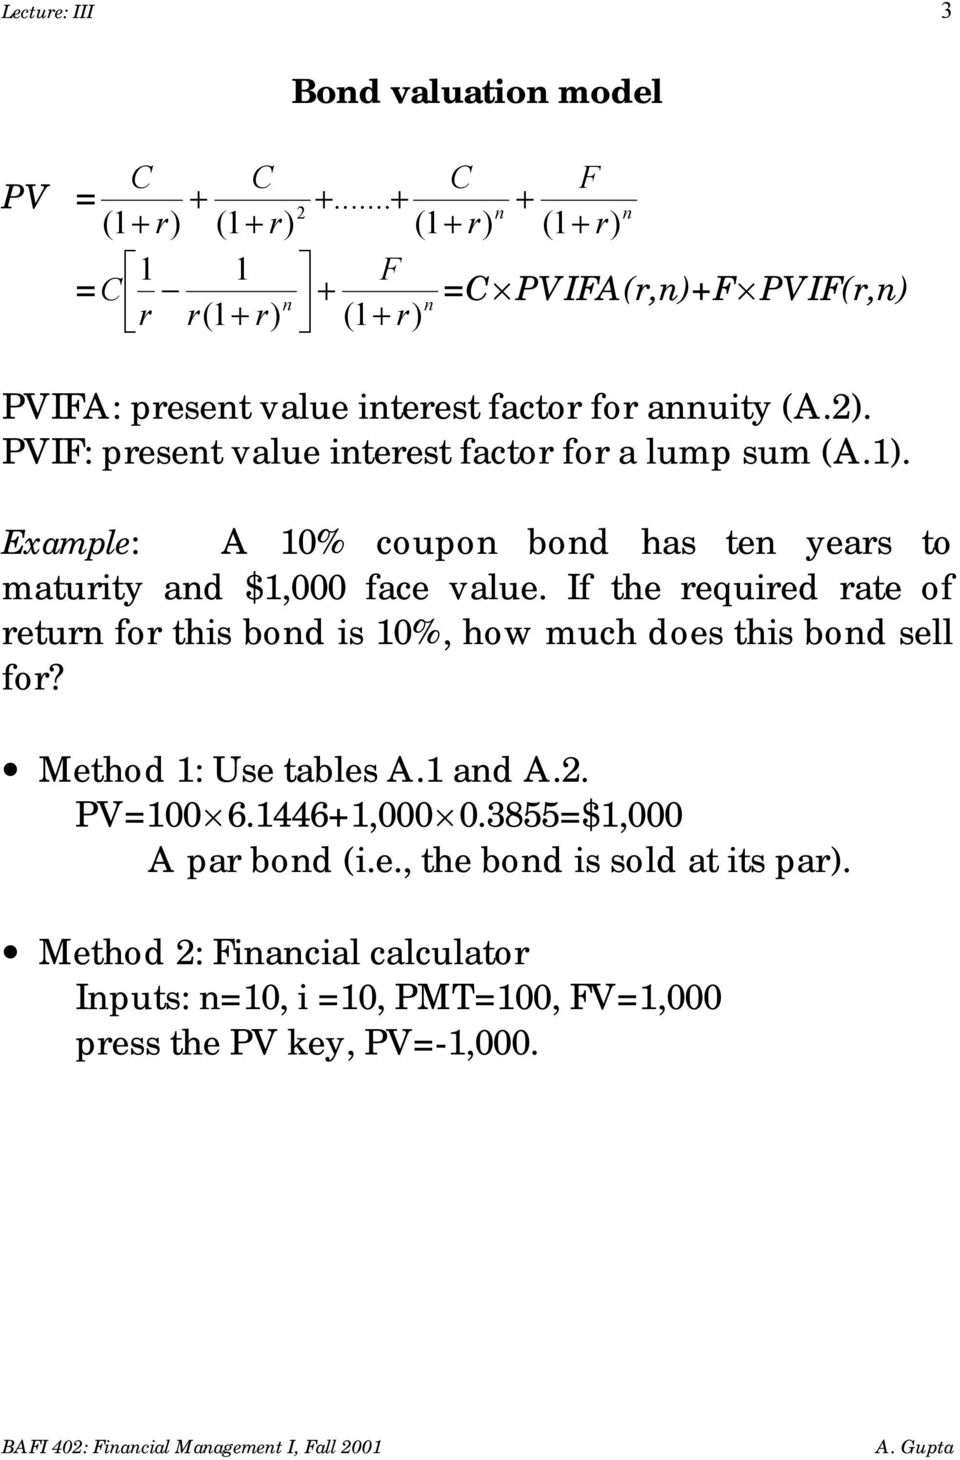 PVIF: present value interest factor for a lump sum (A.1). Example: A 10% coupon bond has ten years to maturity and $1,000 face value.